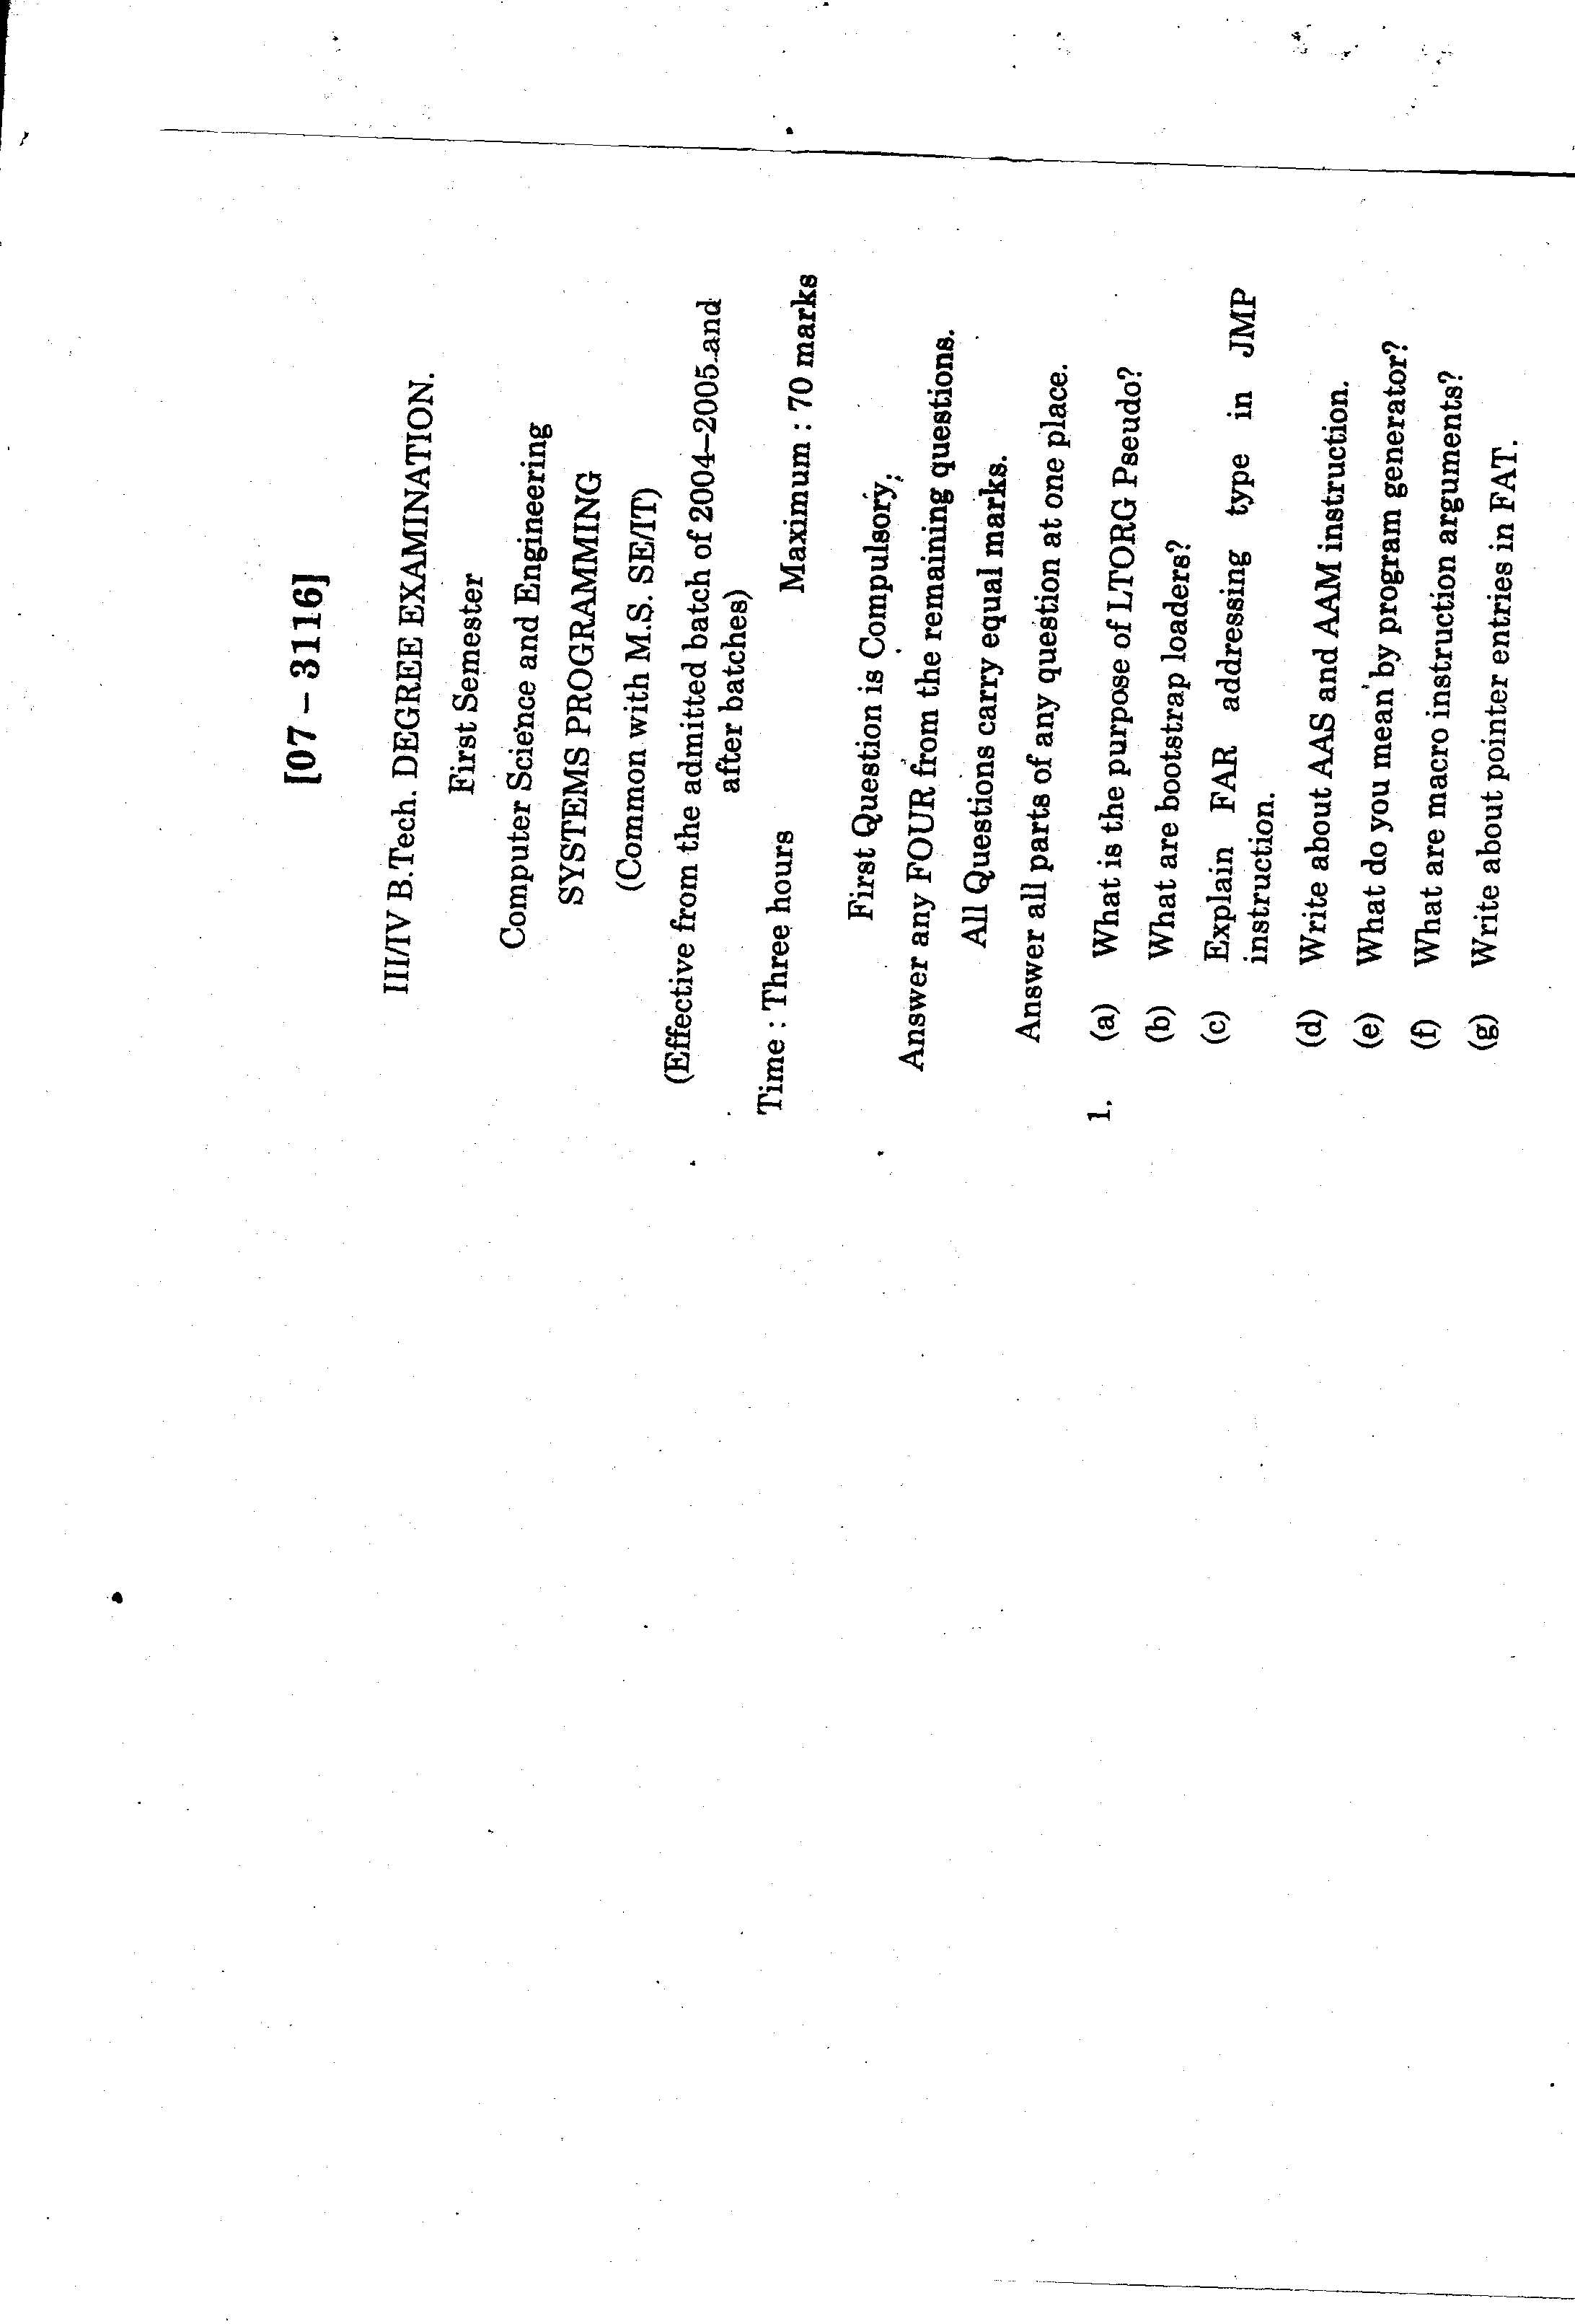 Andhra University Systems Programming model question papers